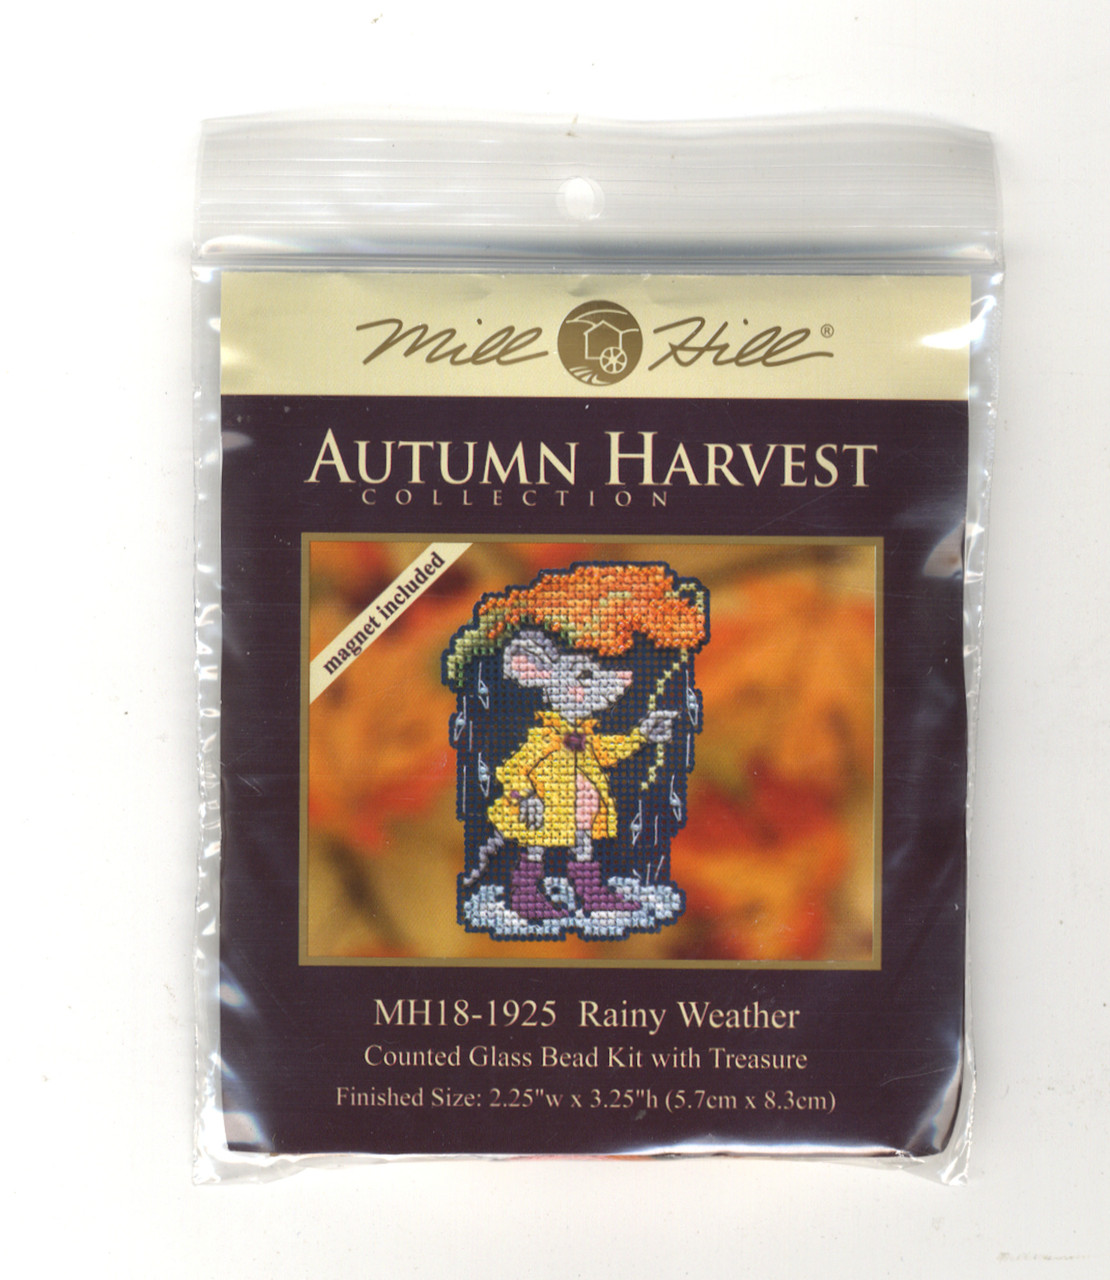 Mill Hill 2019 Autumn Harvest Collection - Rainy Weather Ornament